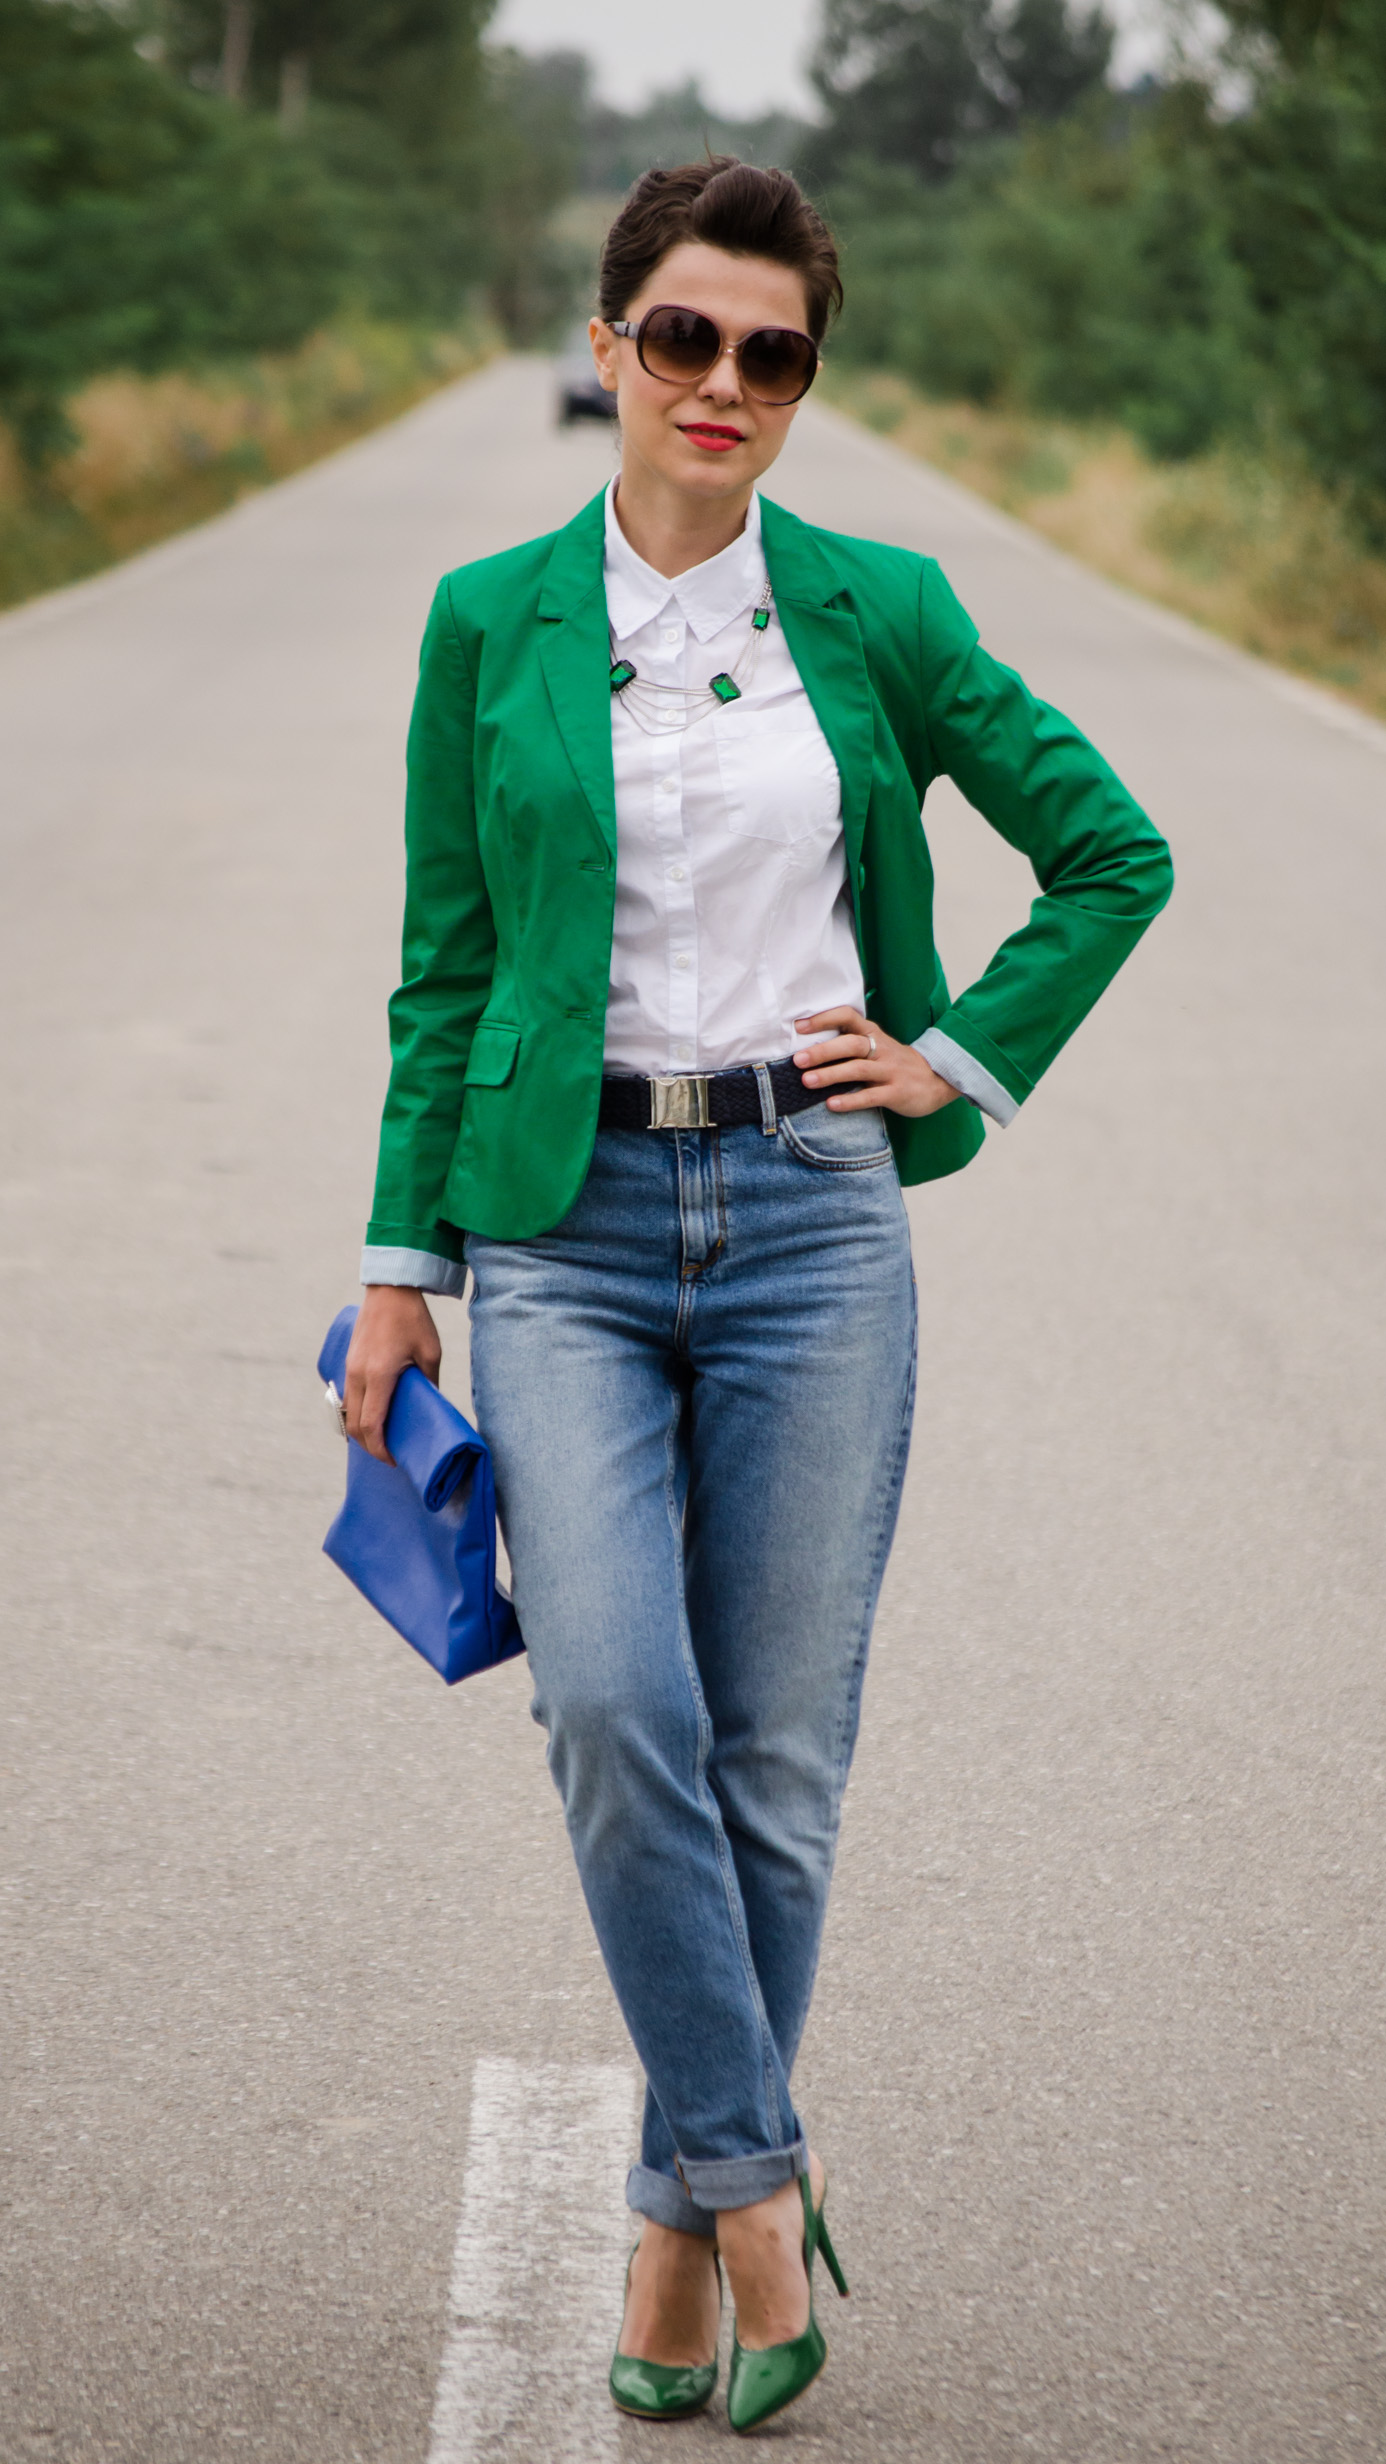 mom jeans emerald green blazer white loose boyfriend shirt blue clutch green heels H&M benvenutti s.oliver